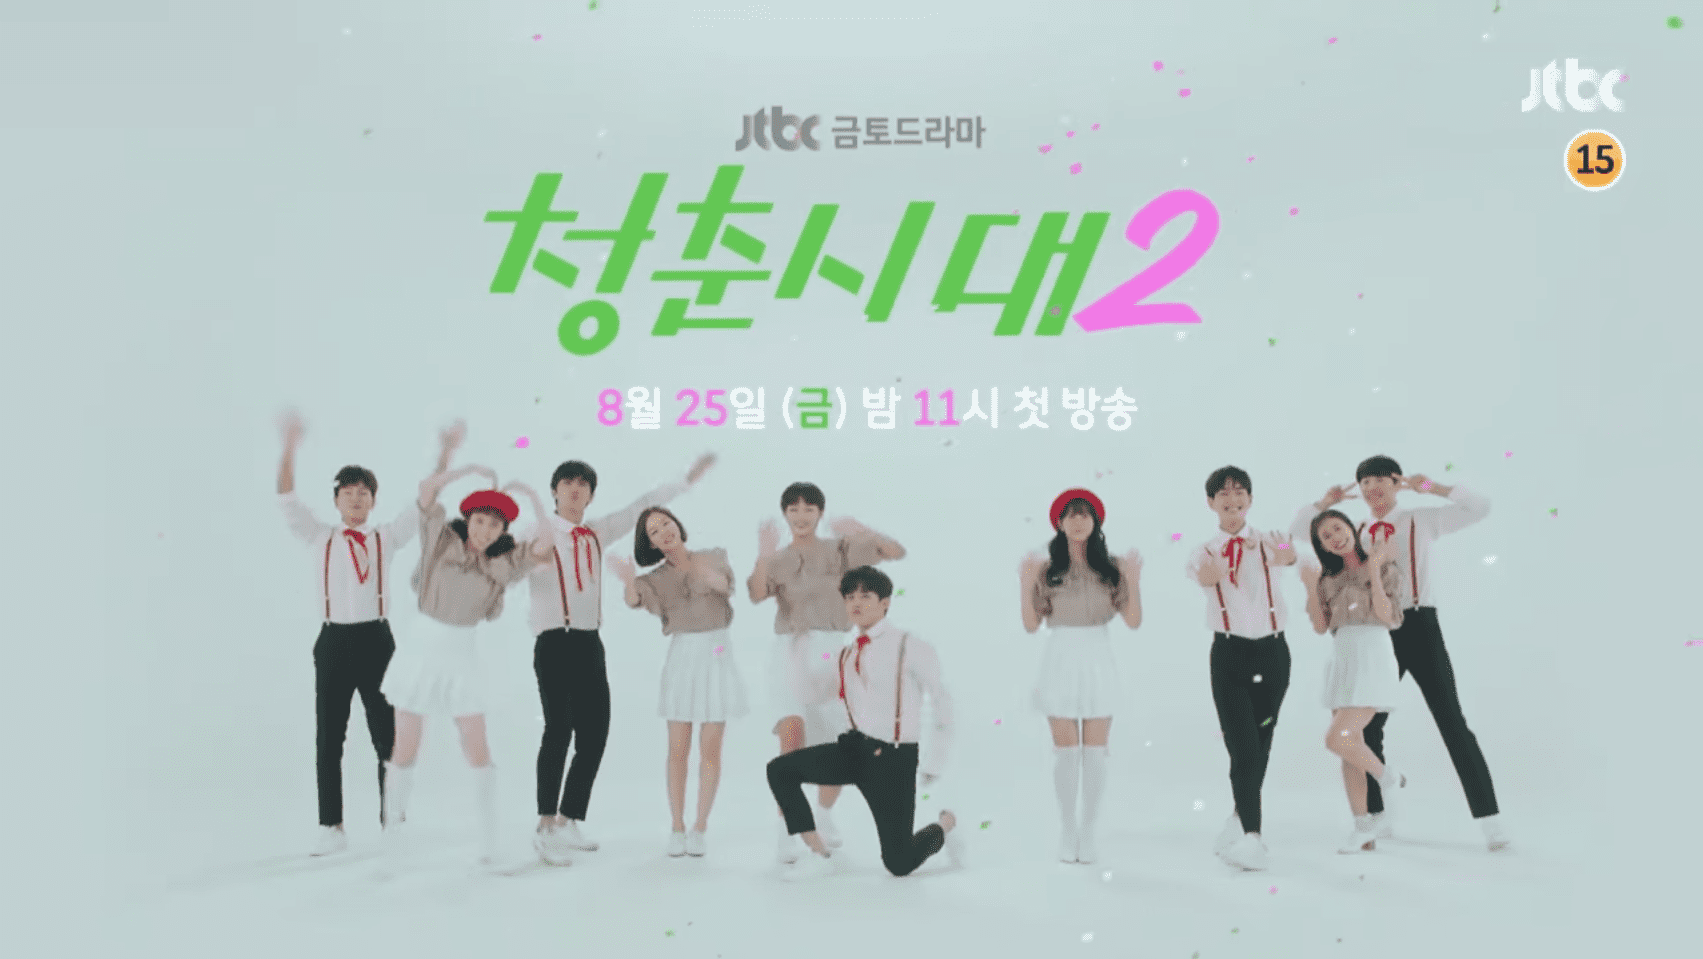 Watch: Age Of Youth 2 Cast Get Their Groove On In Cute Dancing Teaser